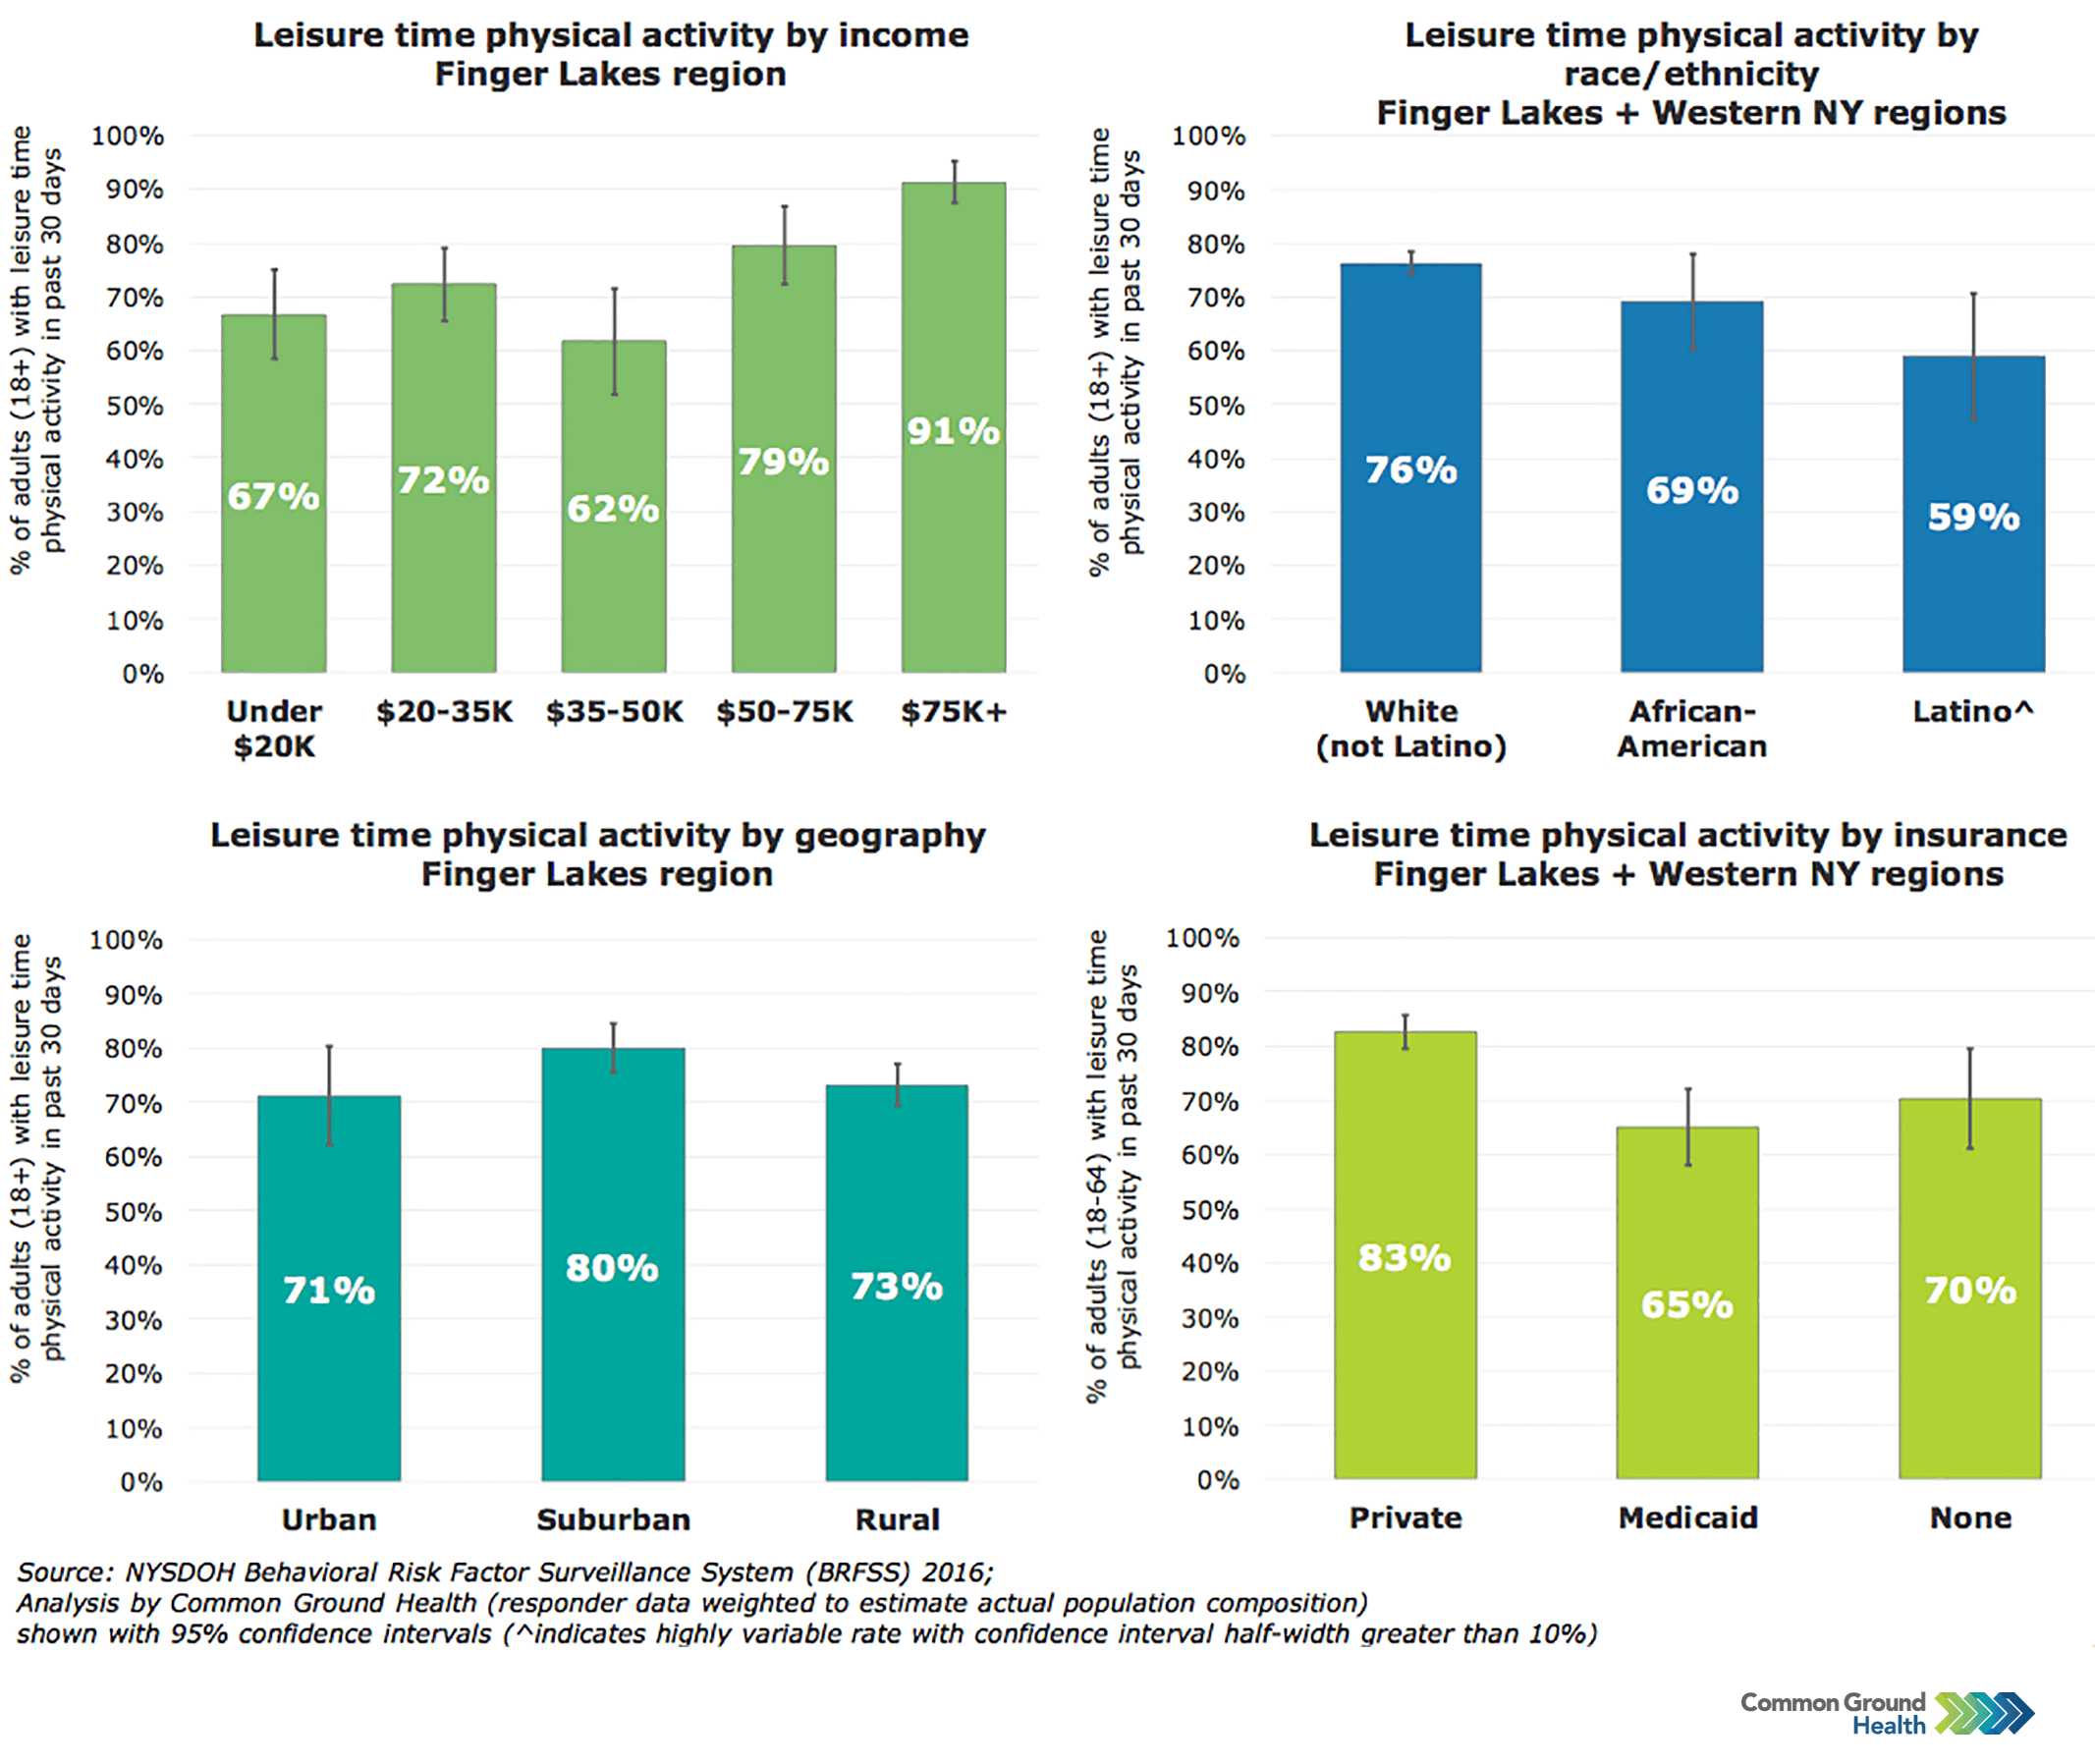 Leisure Time Physical Activity Rates